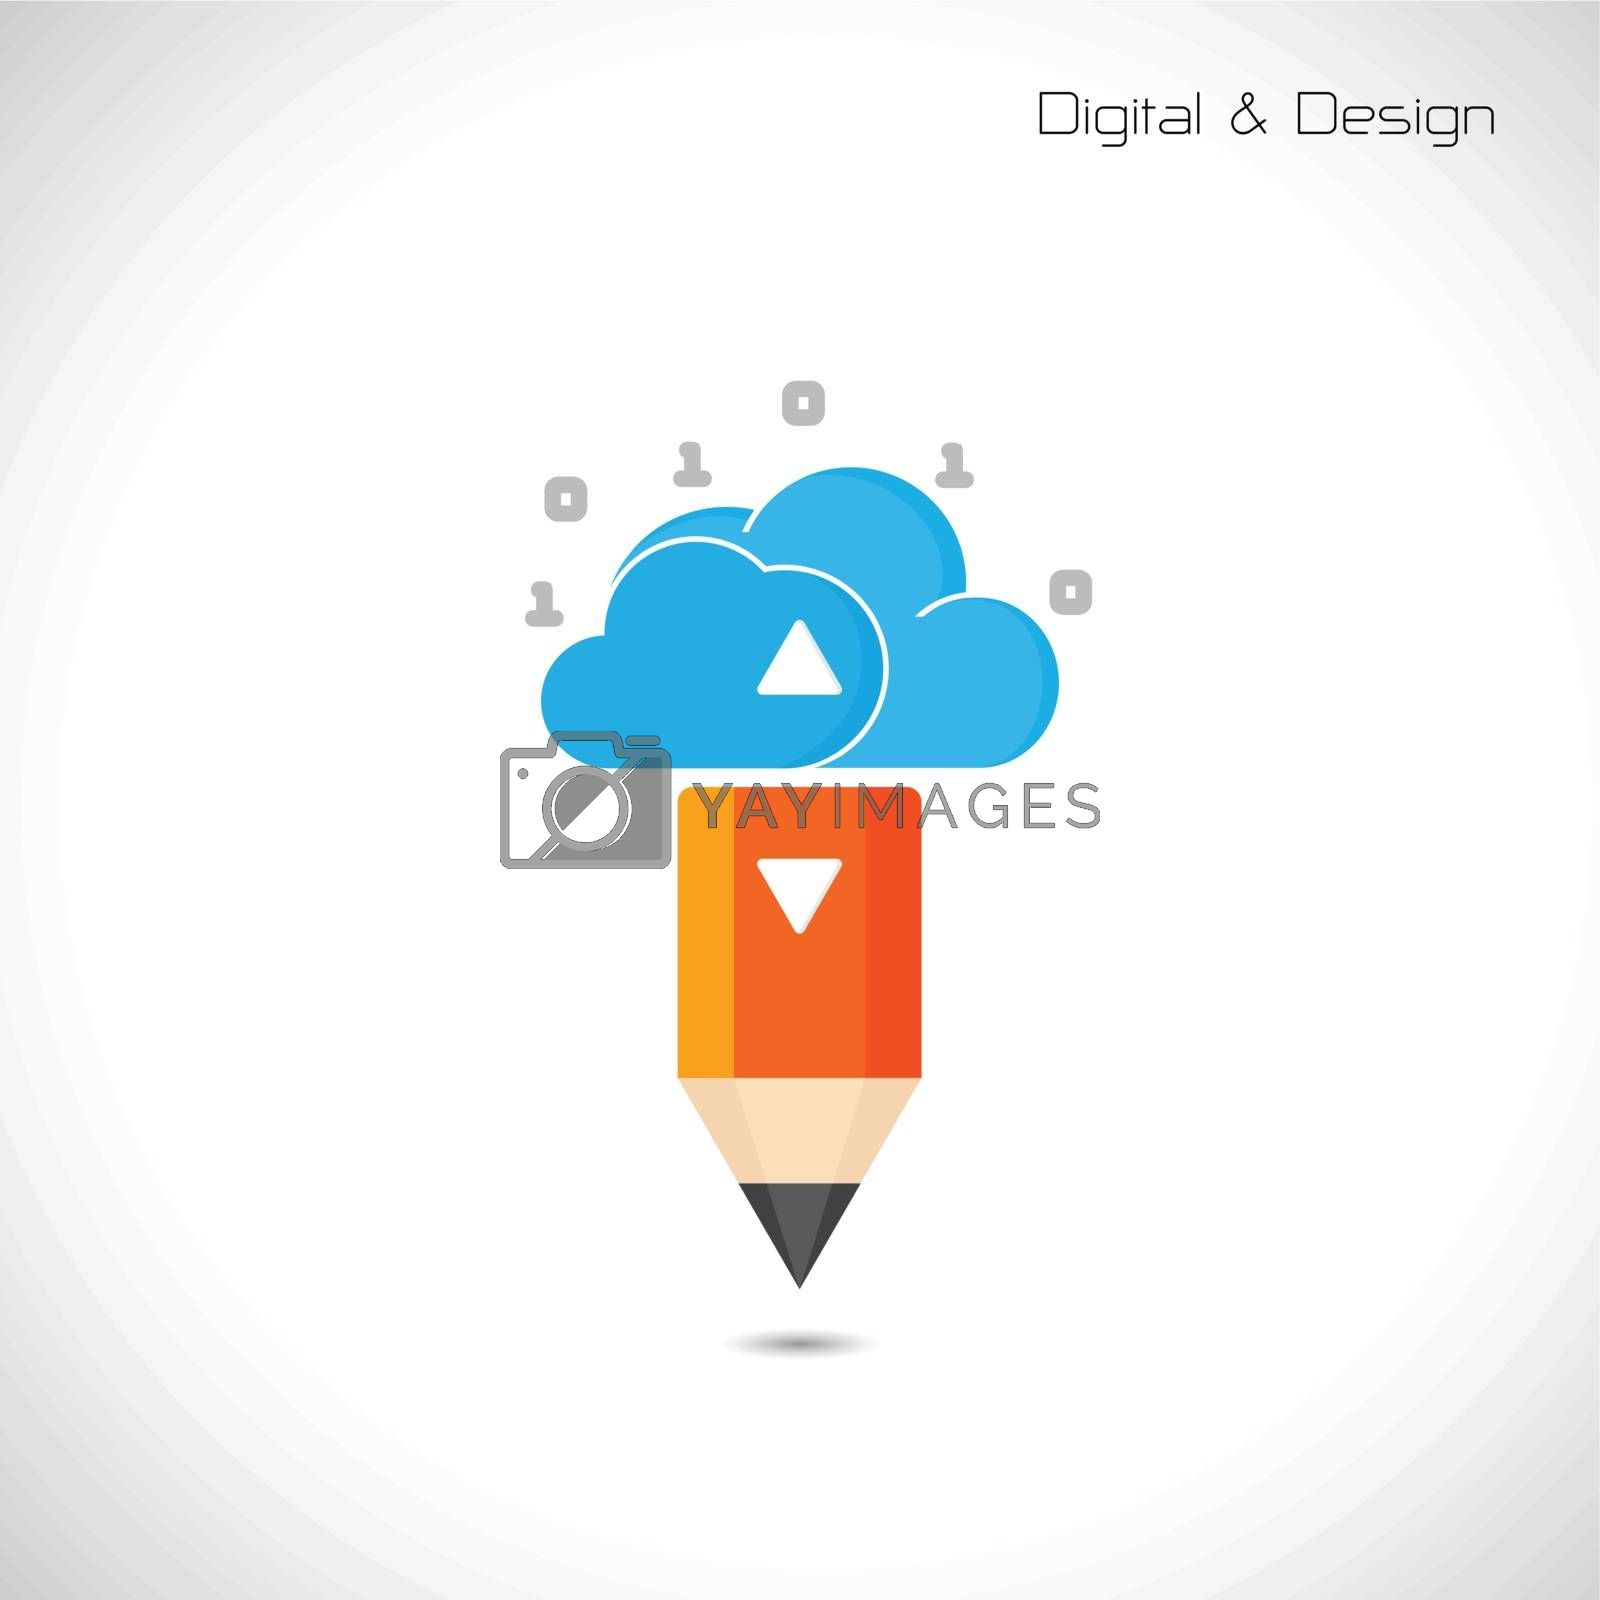 Royalty free image of Creative pencil and cloud symbol by chatchai5172